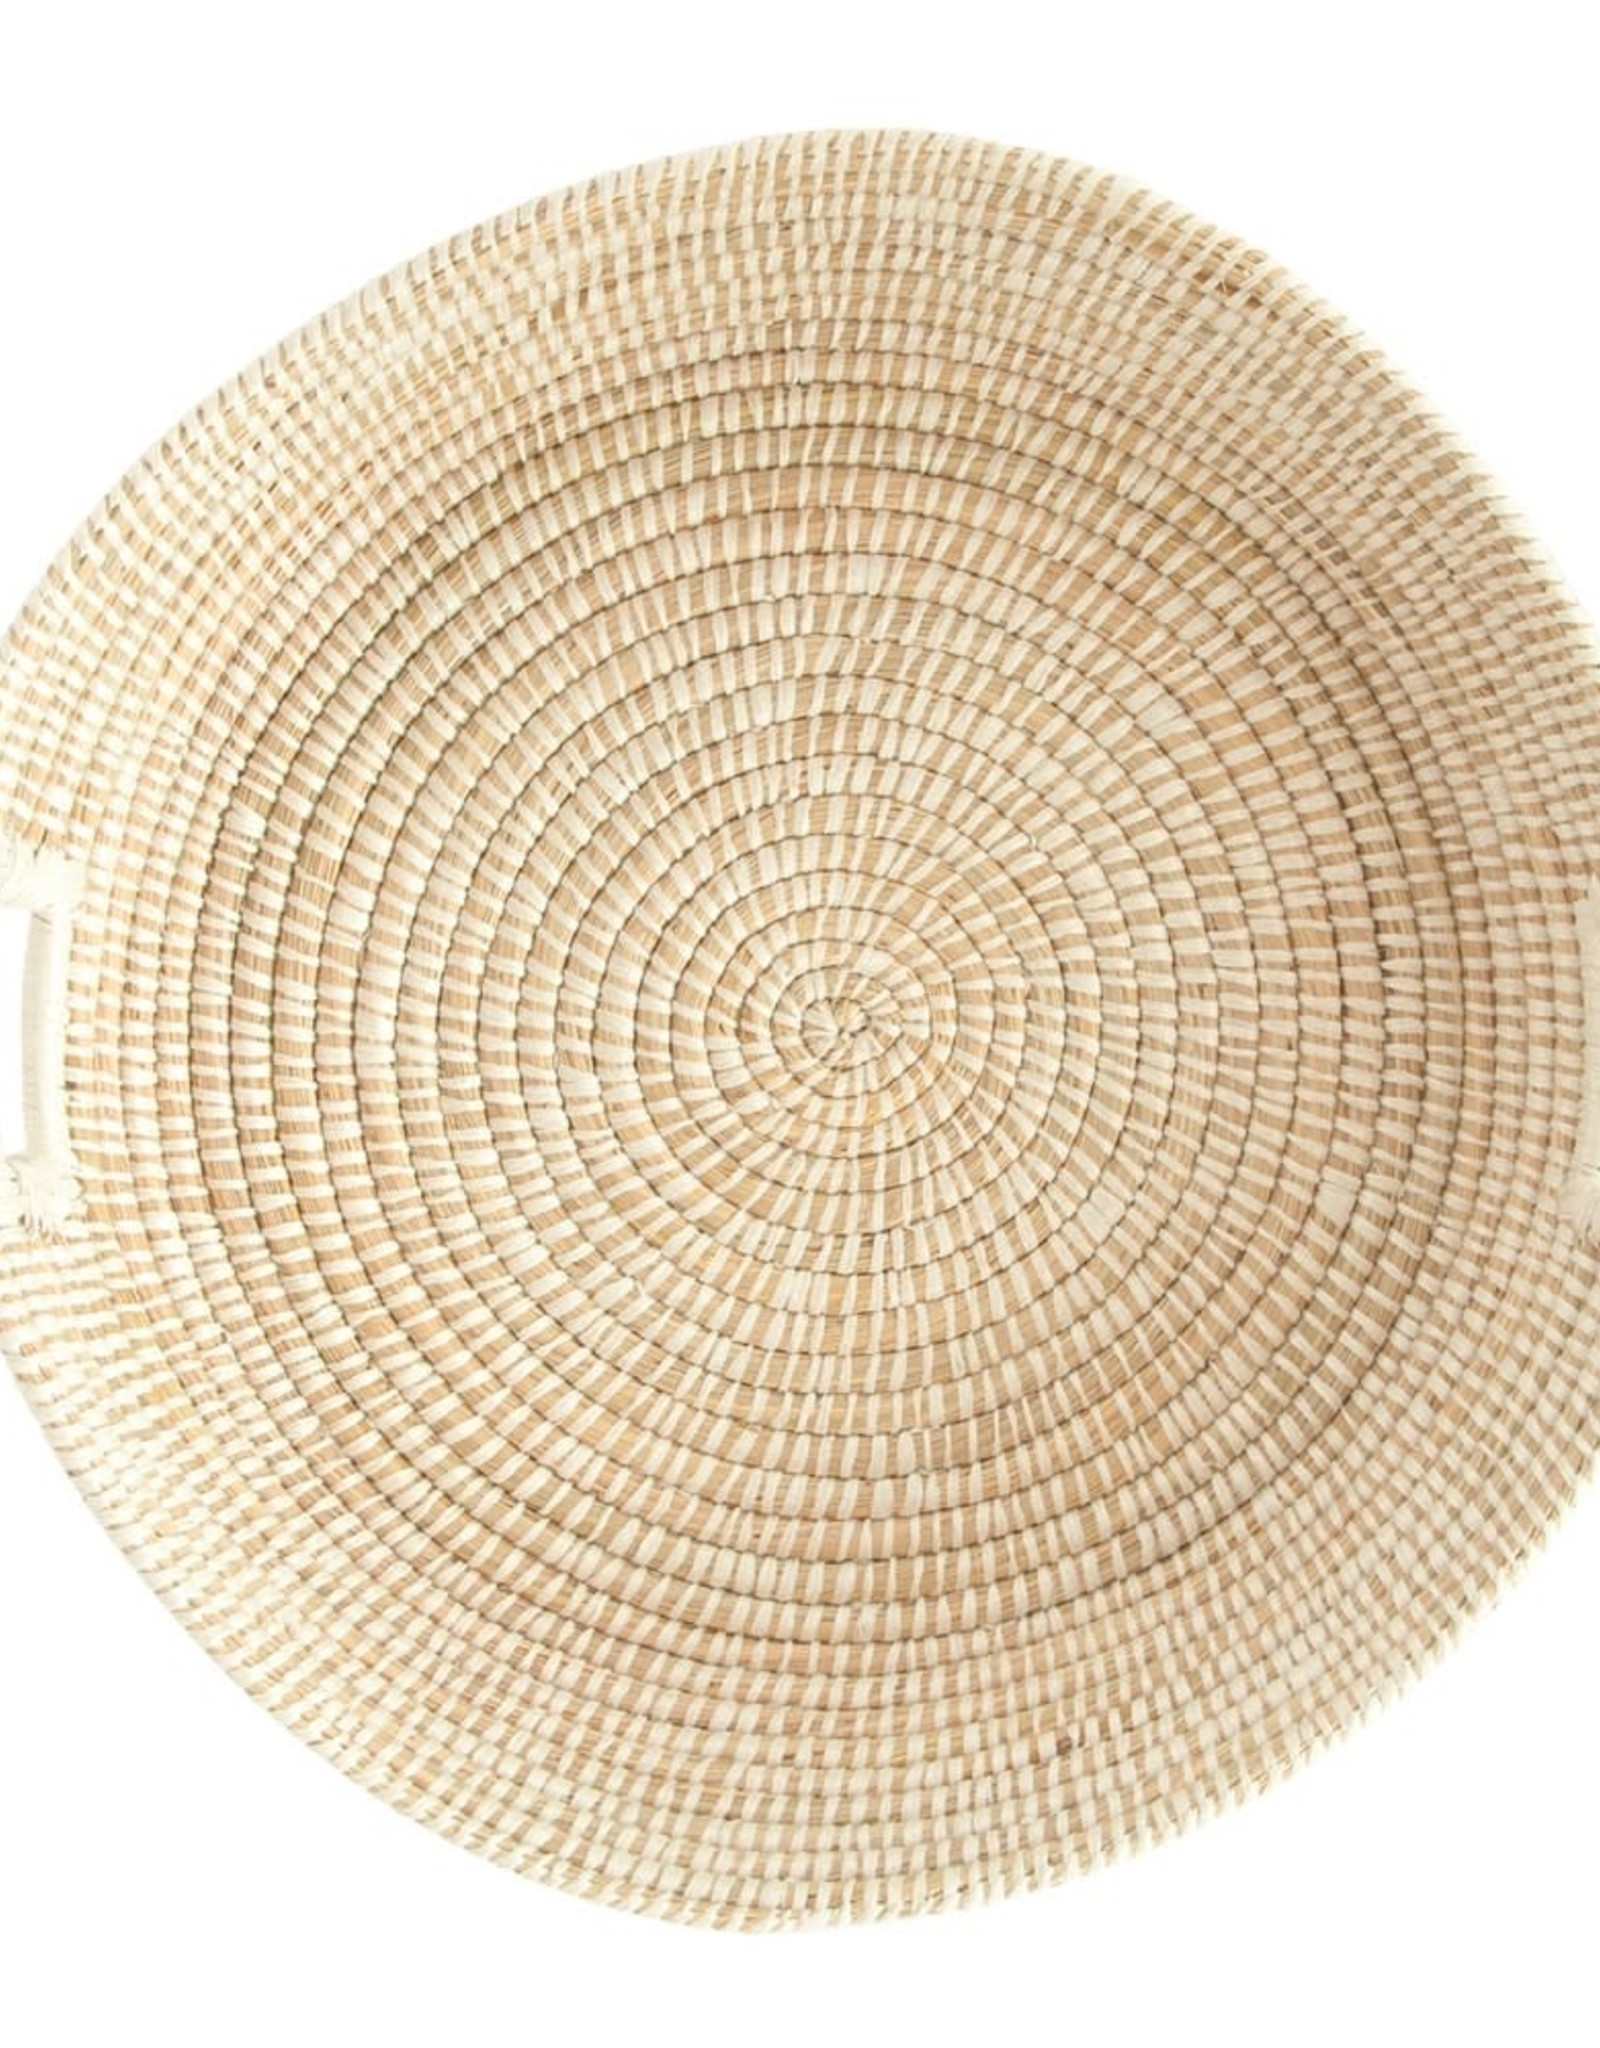 BASKET HAND WOVEN GRASS BASKET WITH HANDLES, NATURAL AND WHITE 23-1/2 INCHES ROUND